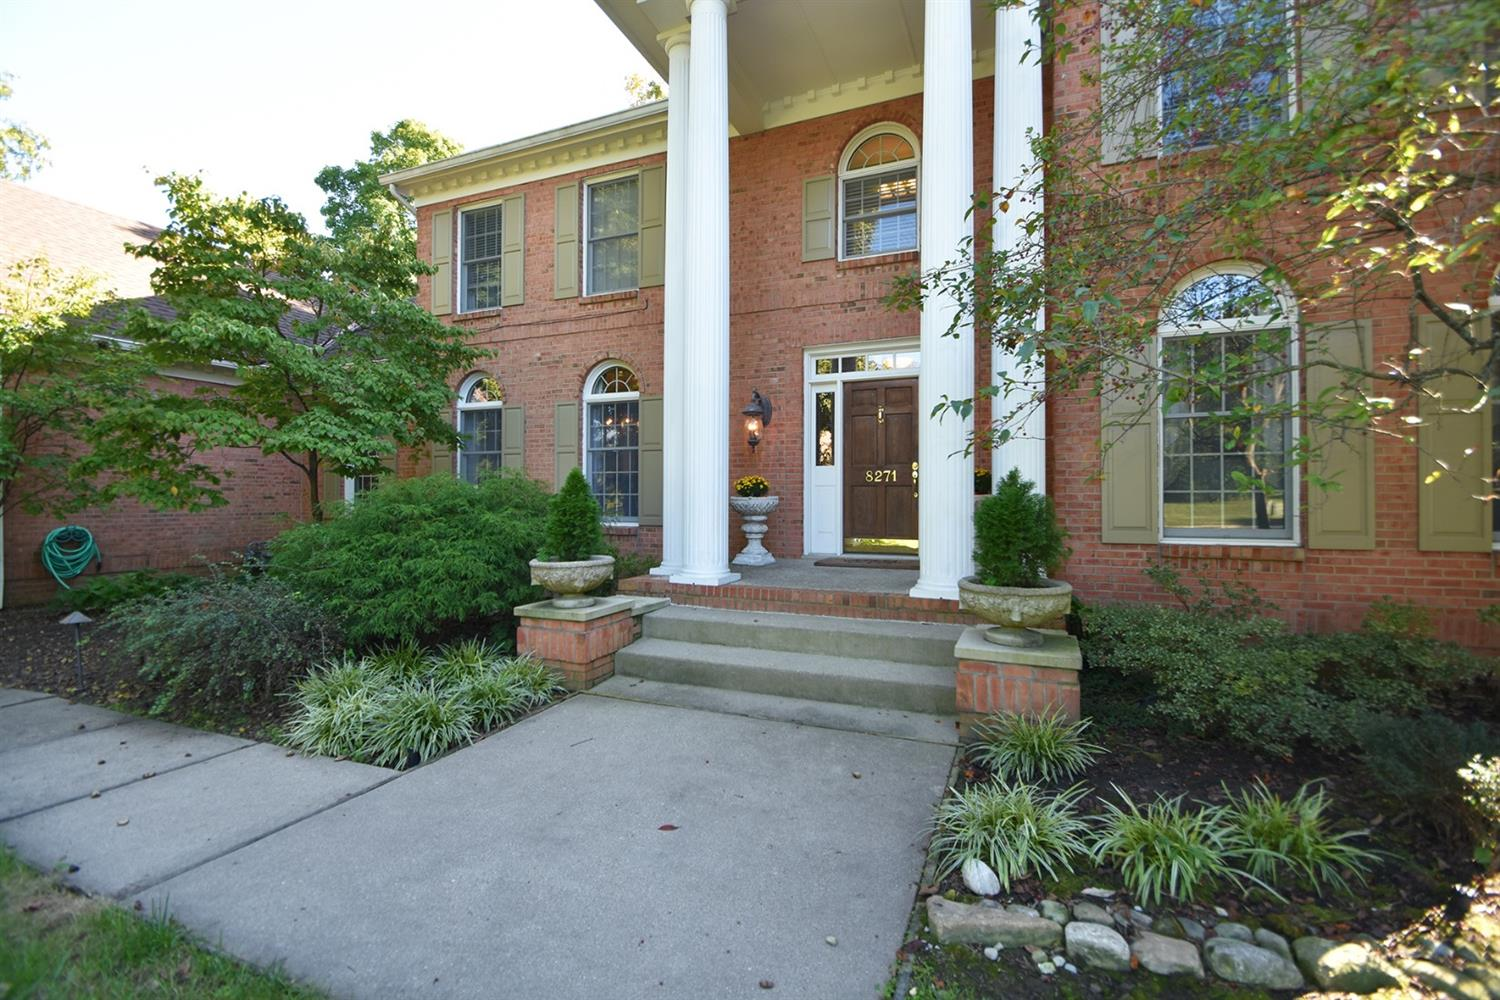 Property for sale at 8271 Glenmill Court, Sycamore Twp,  OH 45249